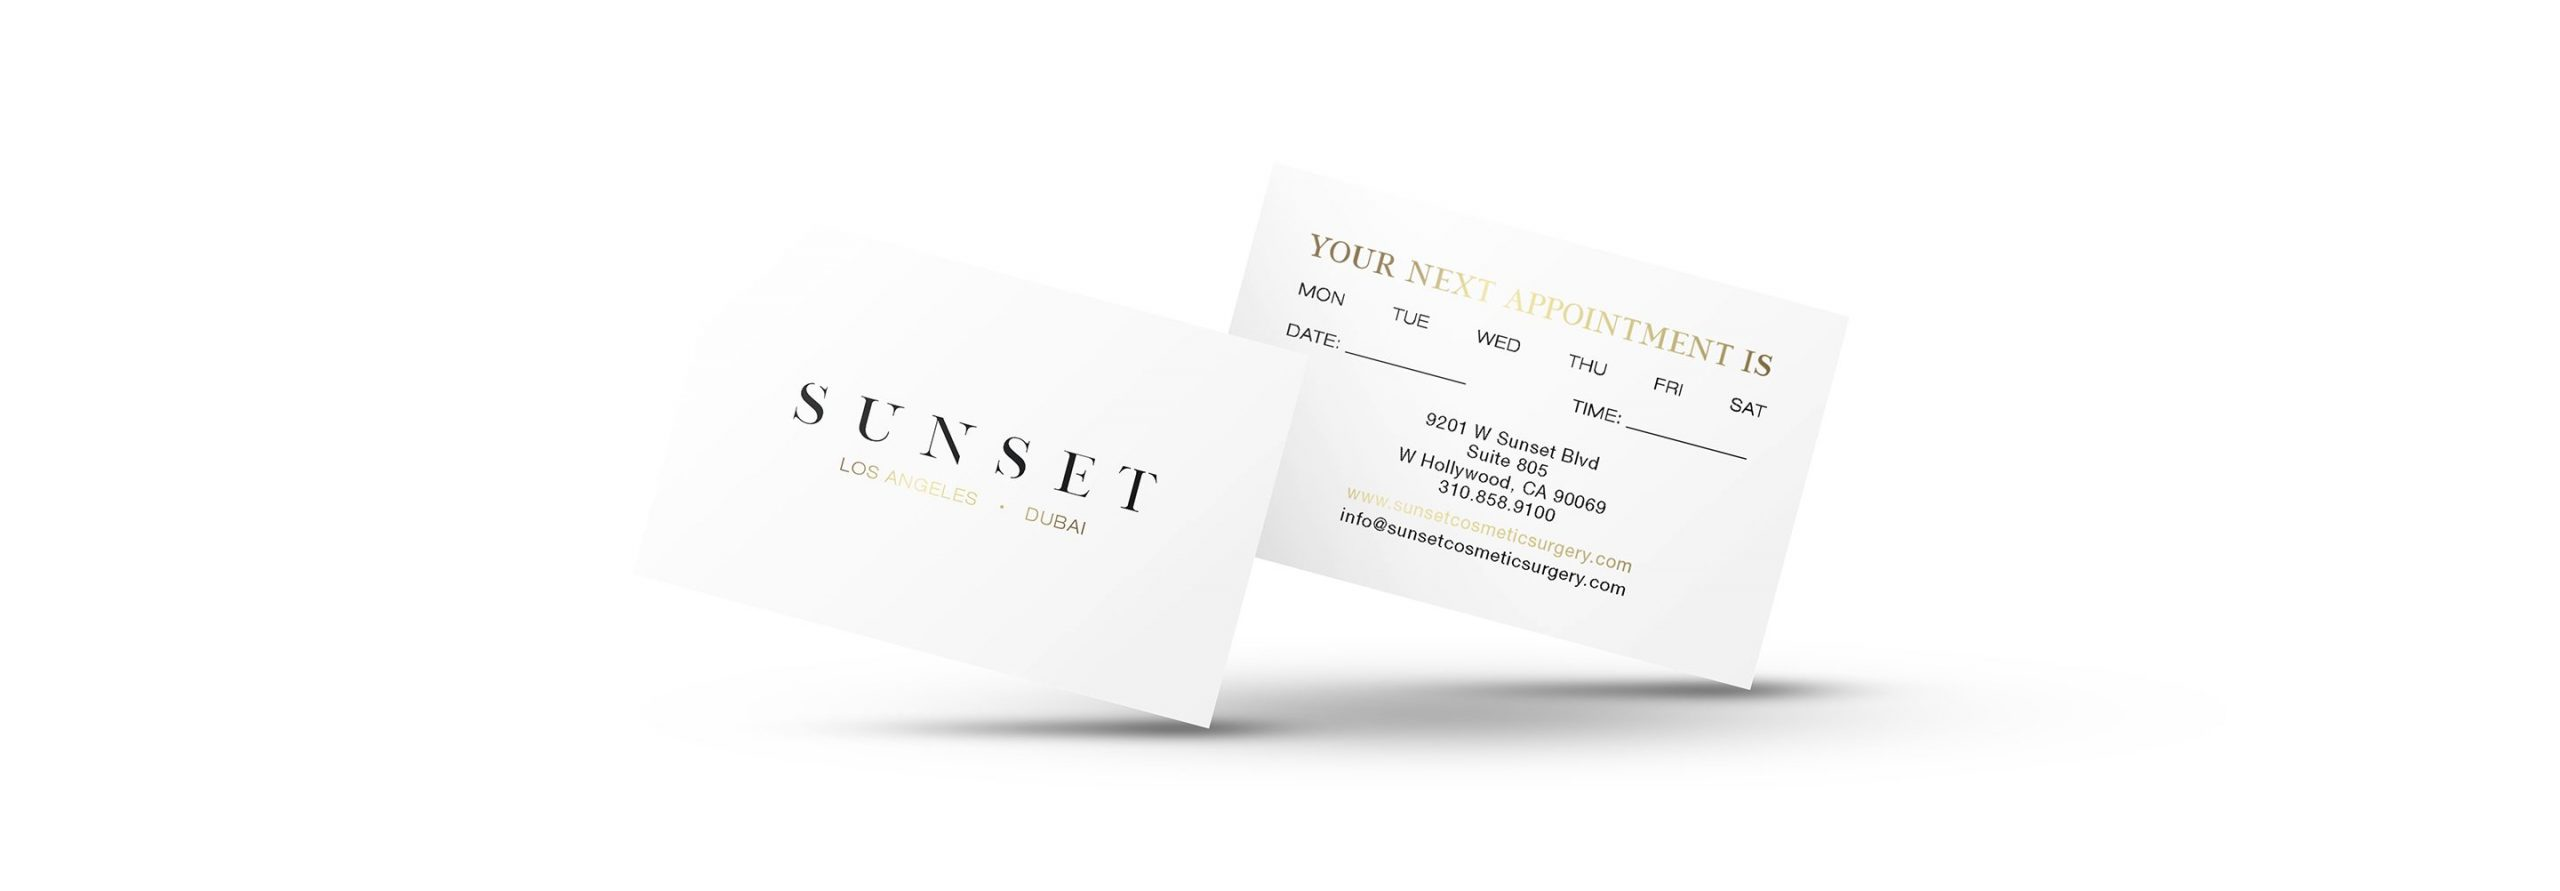 Sunset Cosmetic Surgery Appointment Cards